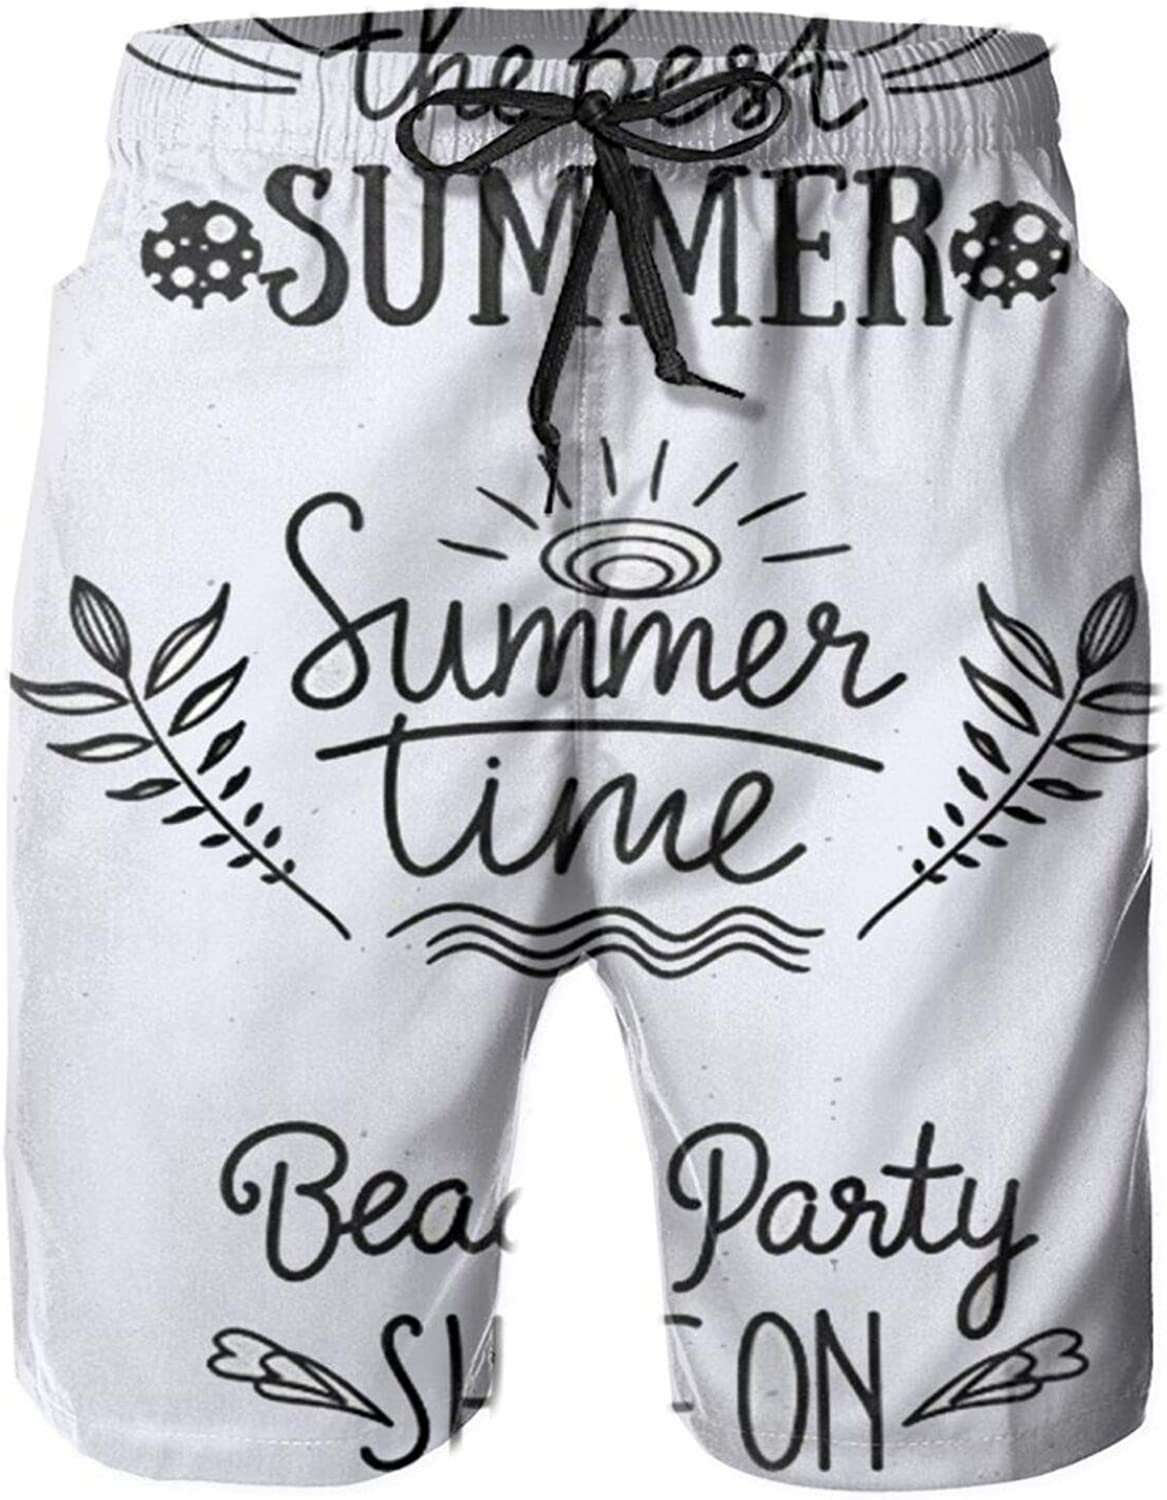 Yt92Pl@00 Men's 100% Polyester Summer Time Clearance SALE Limited New product!! time The Beach Best